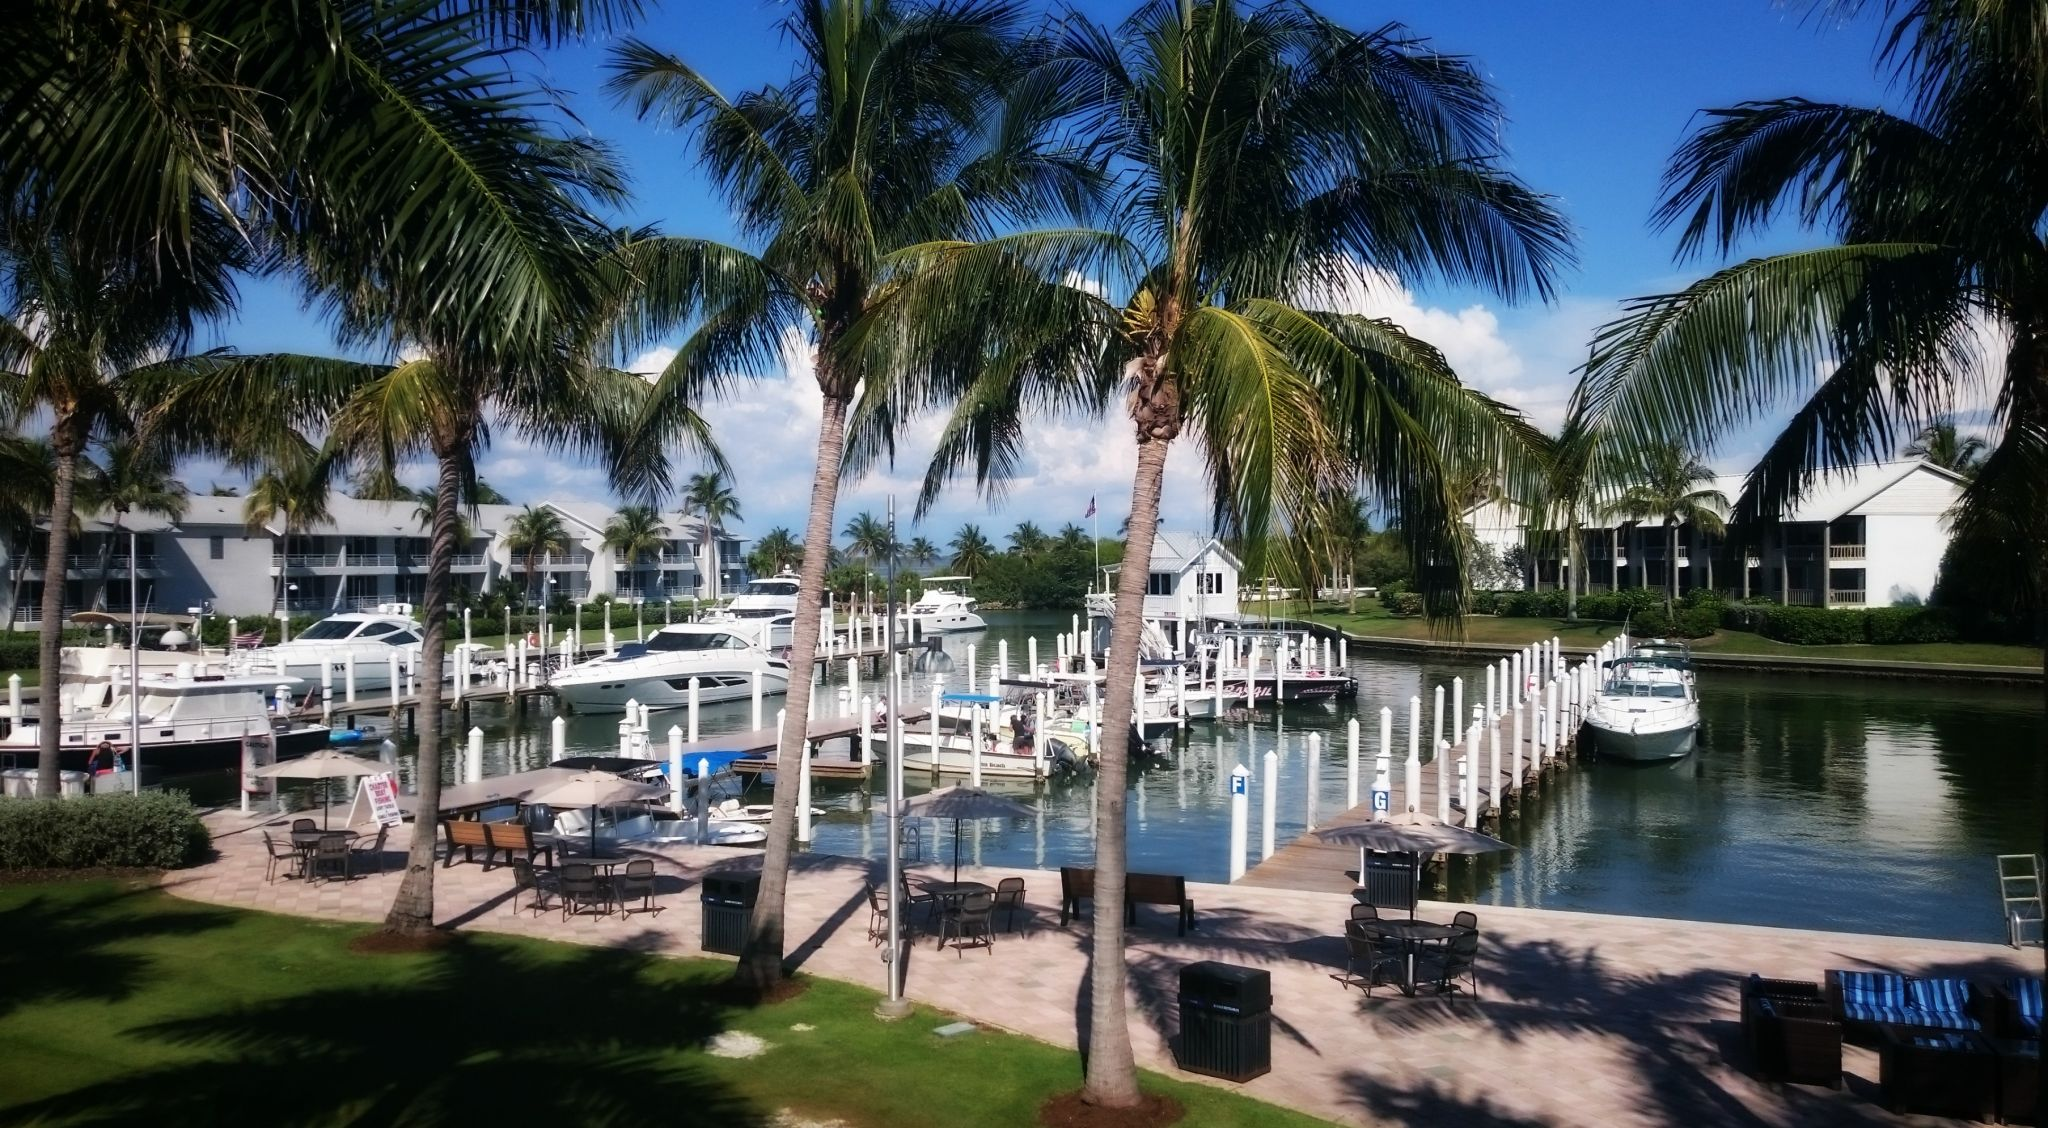 South Seas Hotel Captiva Island